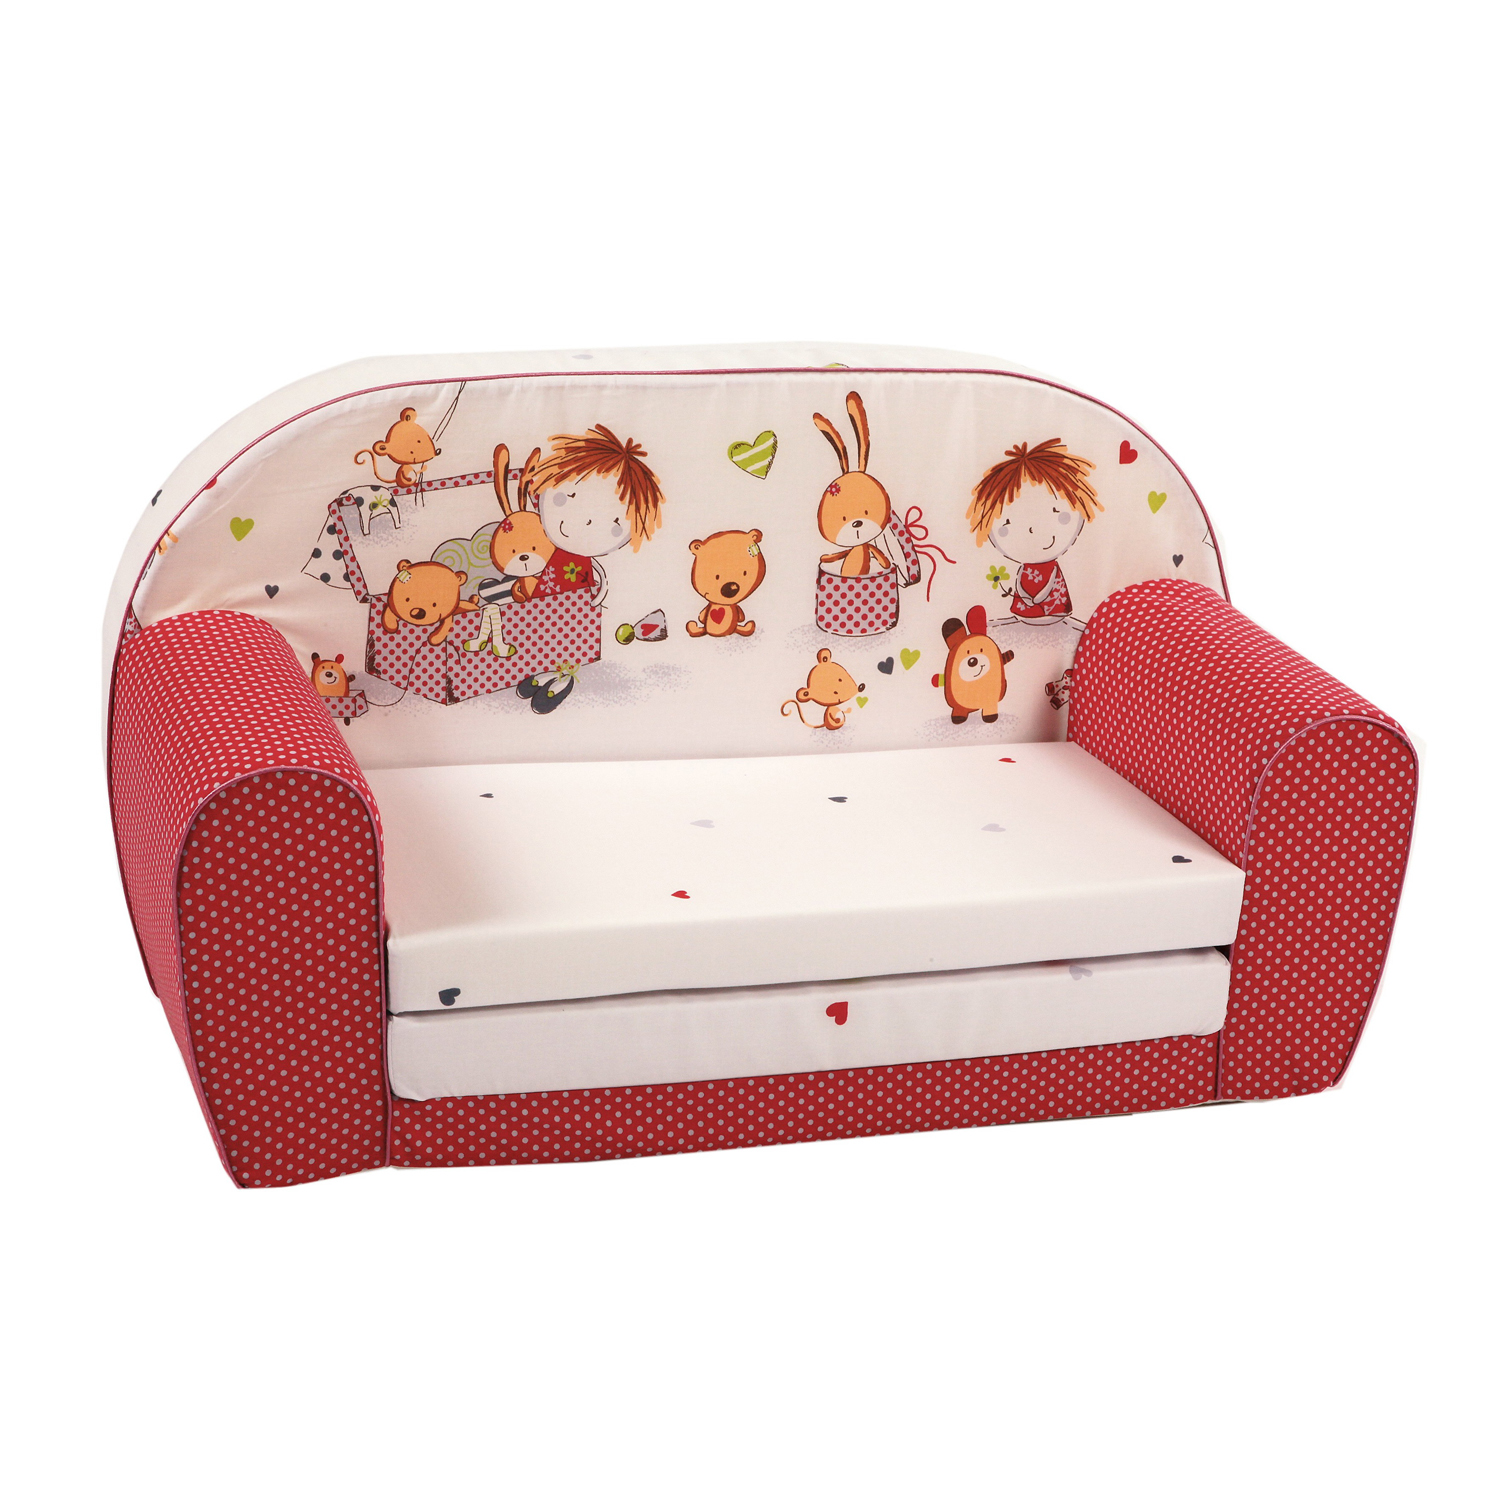 knorr baby gmbh kinder schlafsofa spielzimmer rot online kaufen. Black Bedroom Furniture Sets. Home Design Ideas